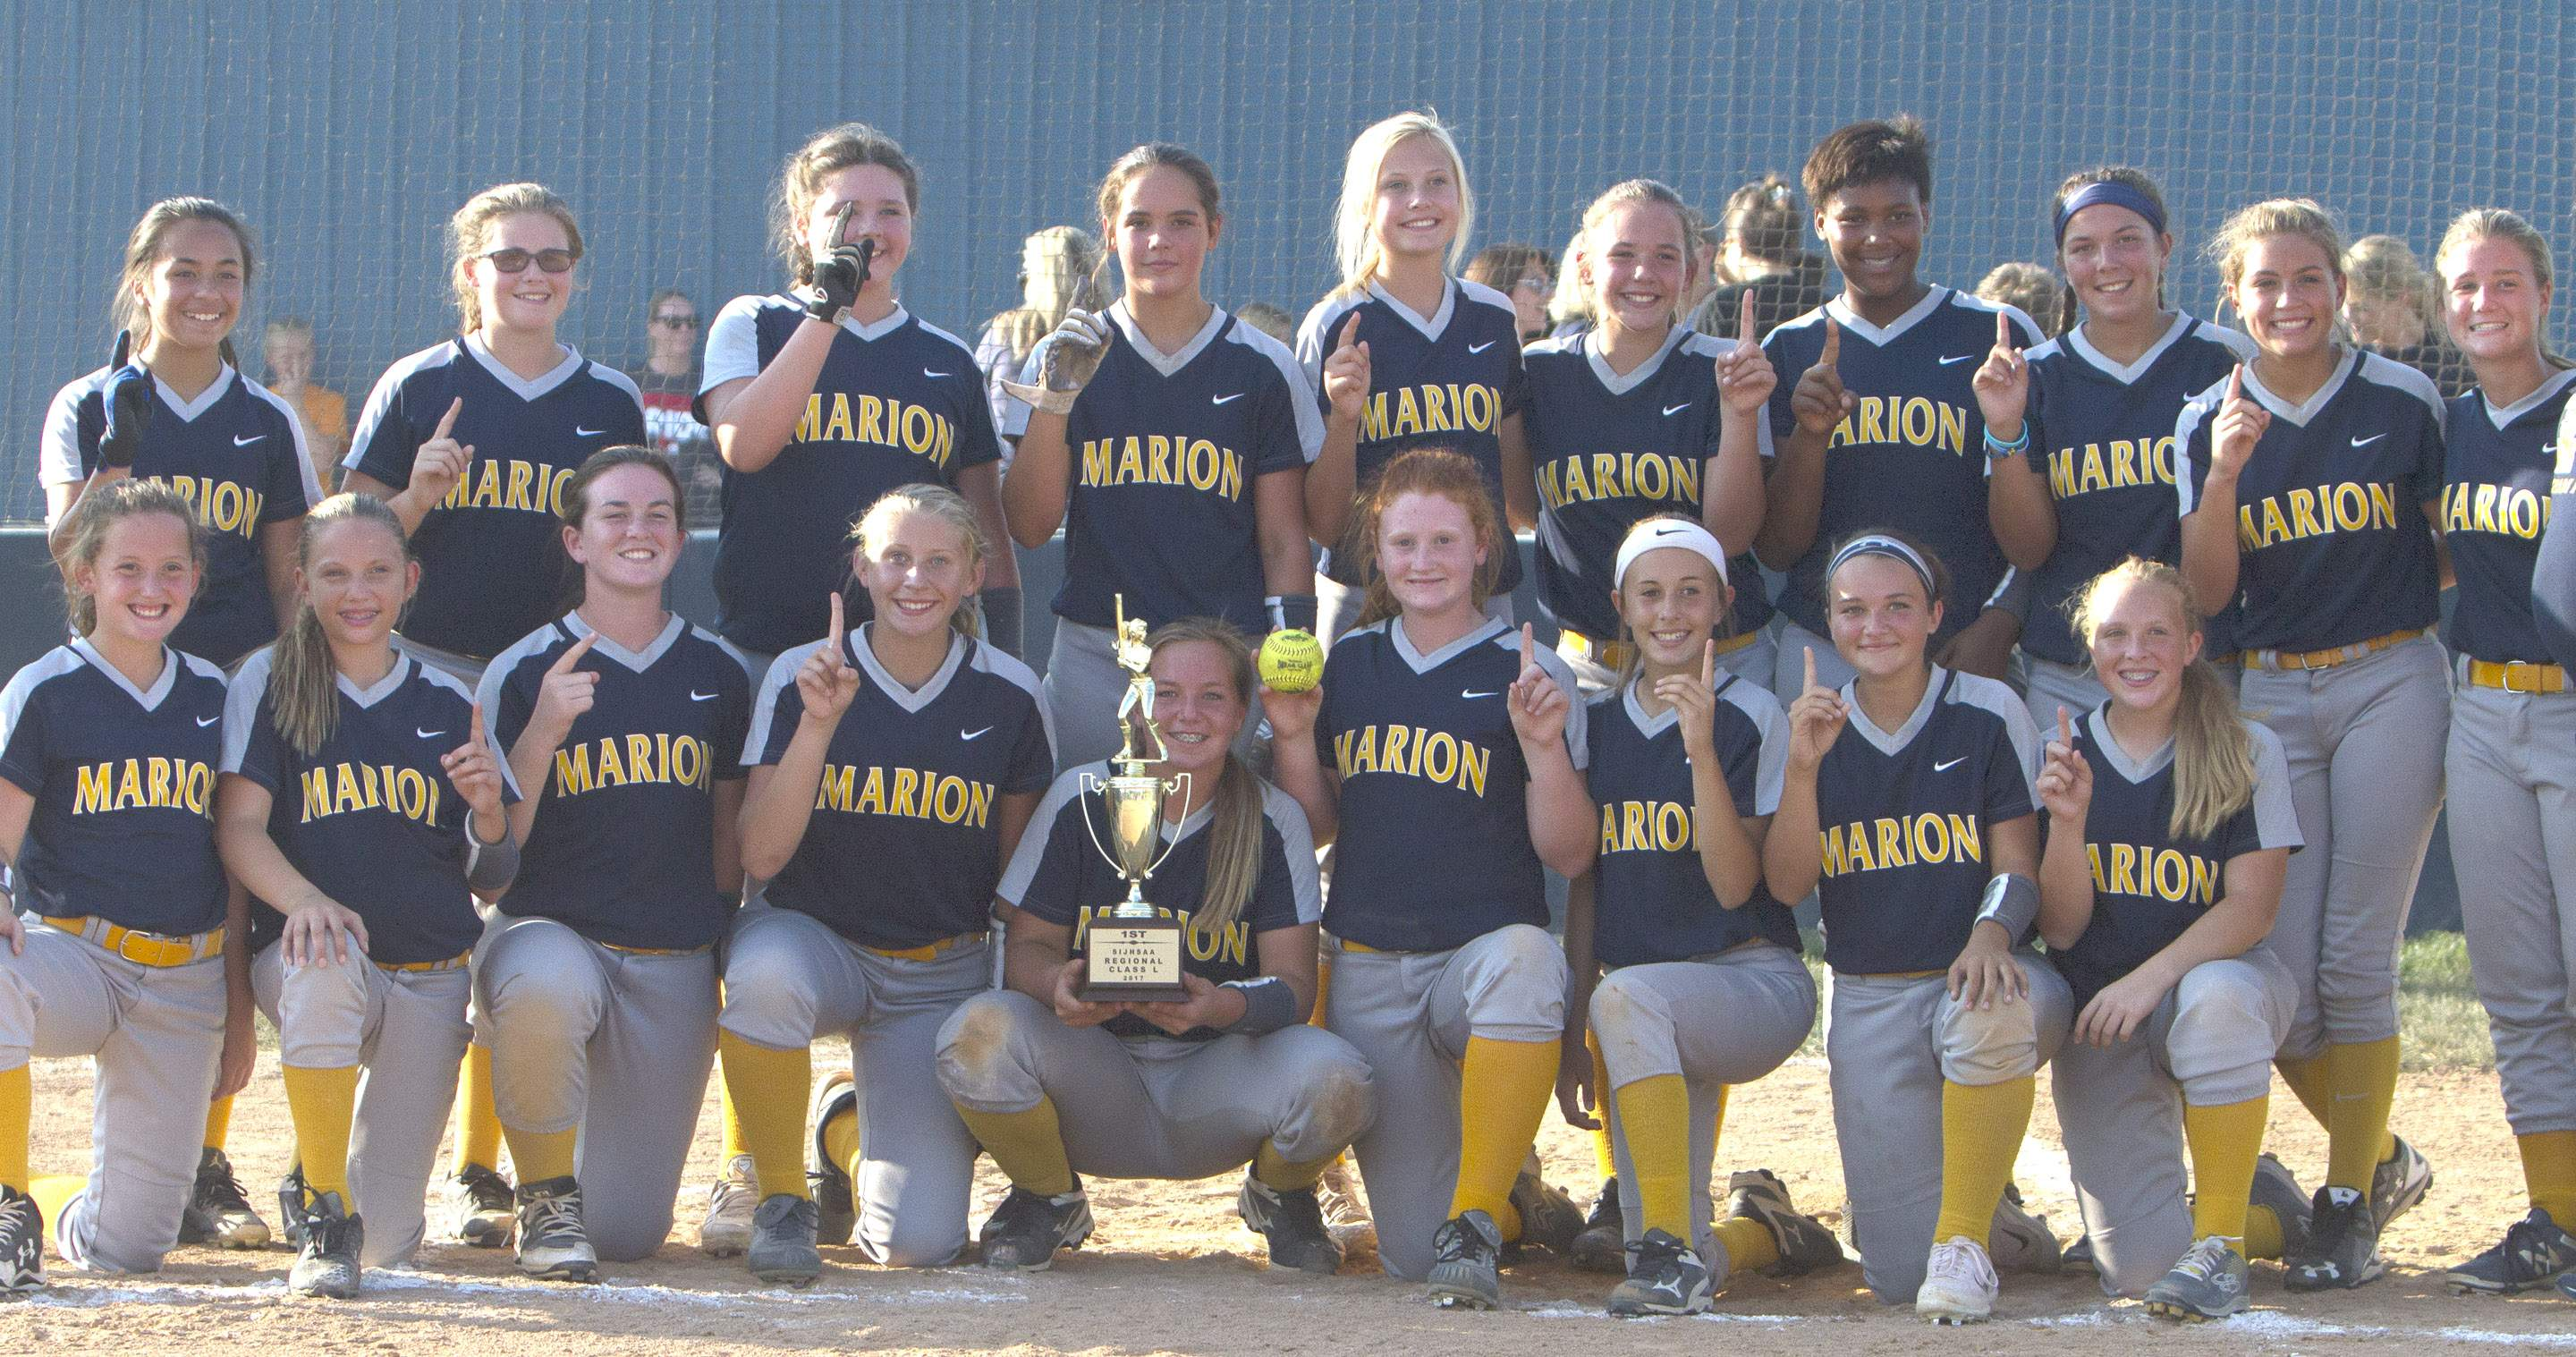 The MJHS softball team poses with the regional championship trophy.